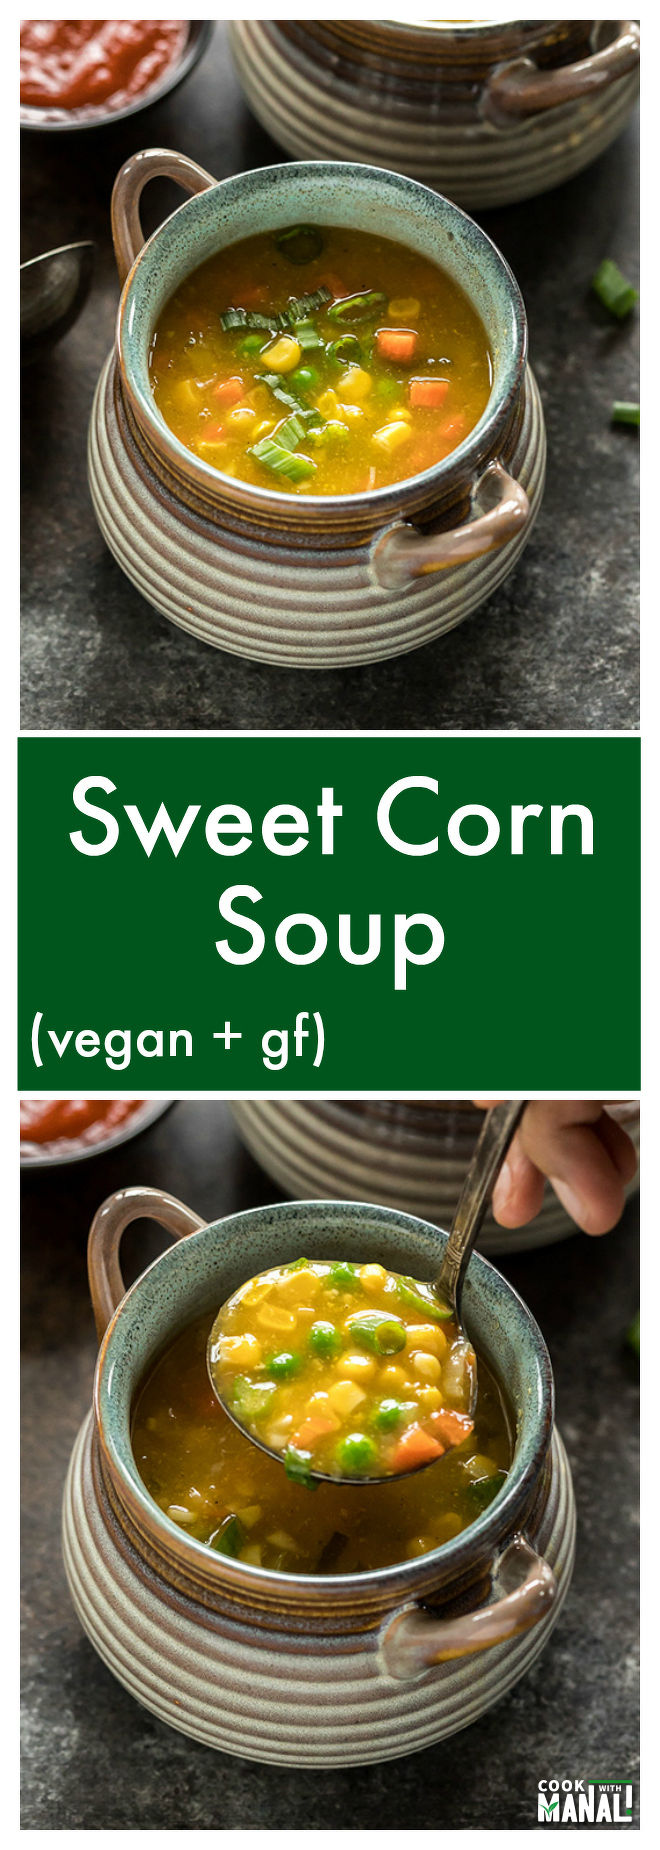 Famous Indo Chinese Sweet Corn Soup is lightly spiced and made with sweet corns, carrots, green peas and spring onions! It's vegan & gluten-free.